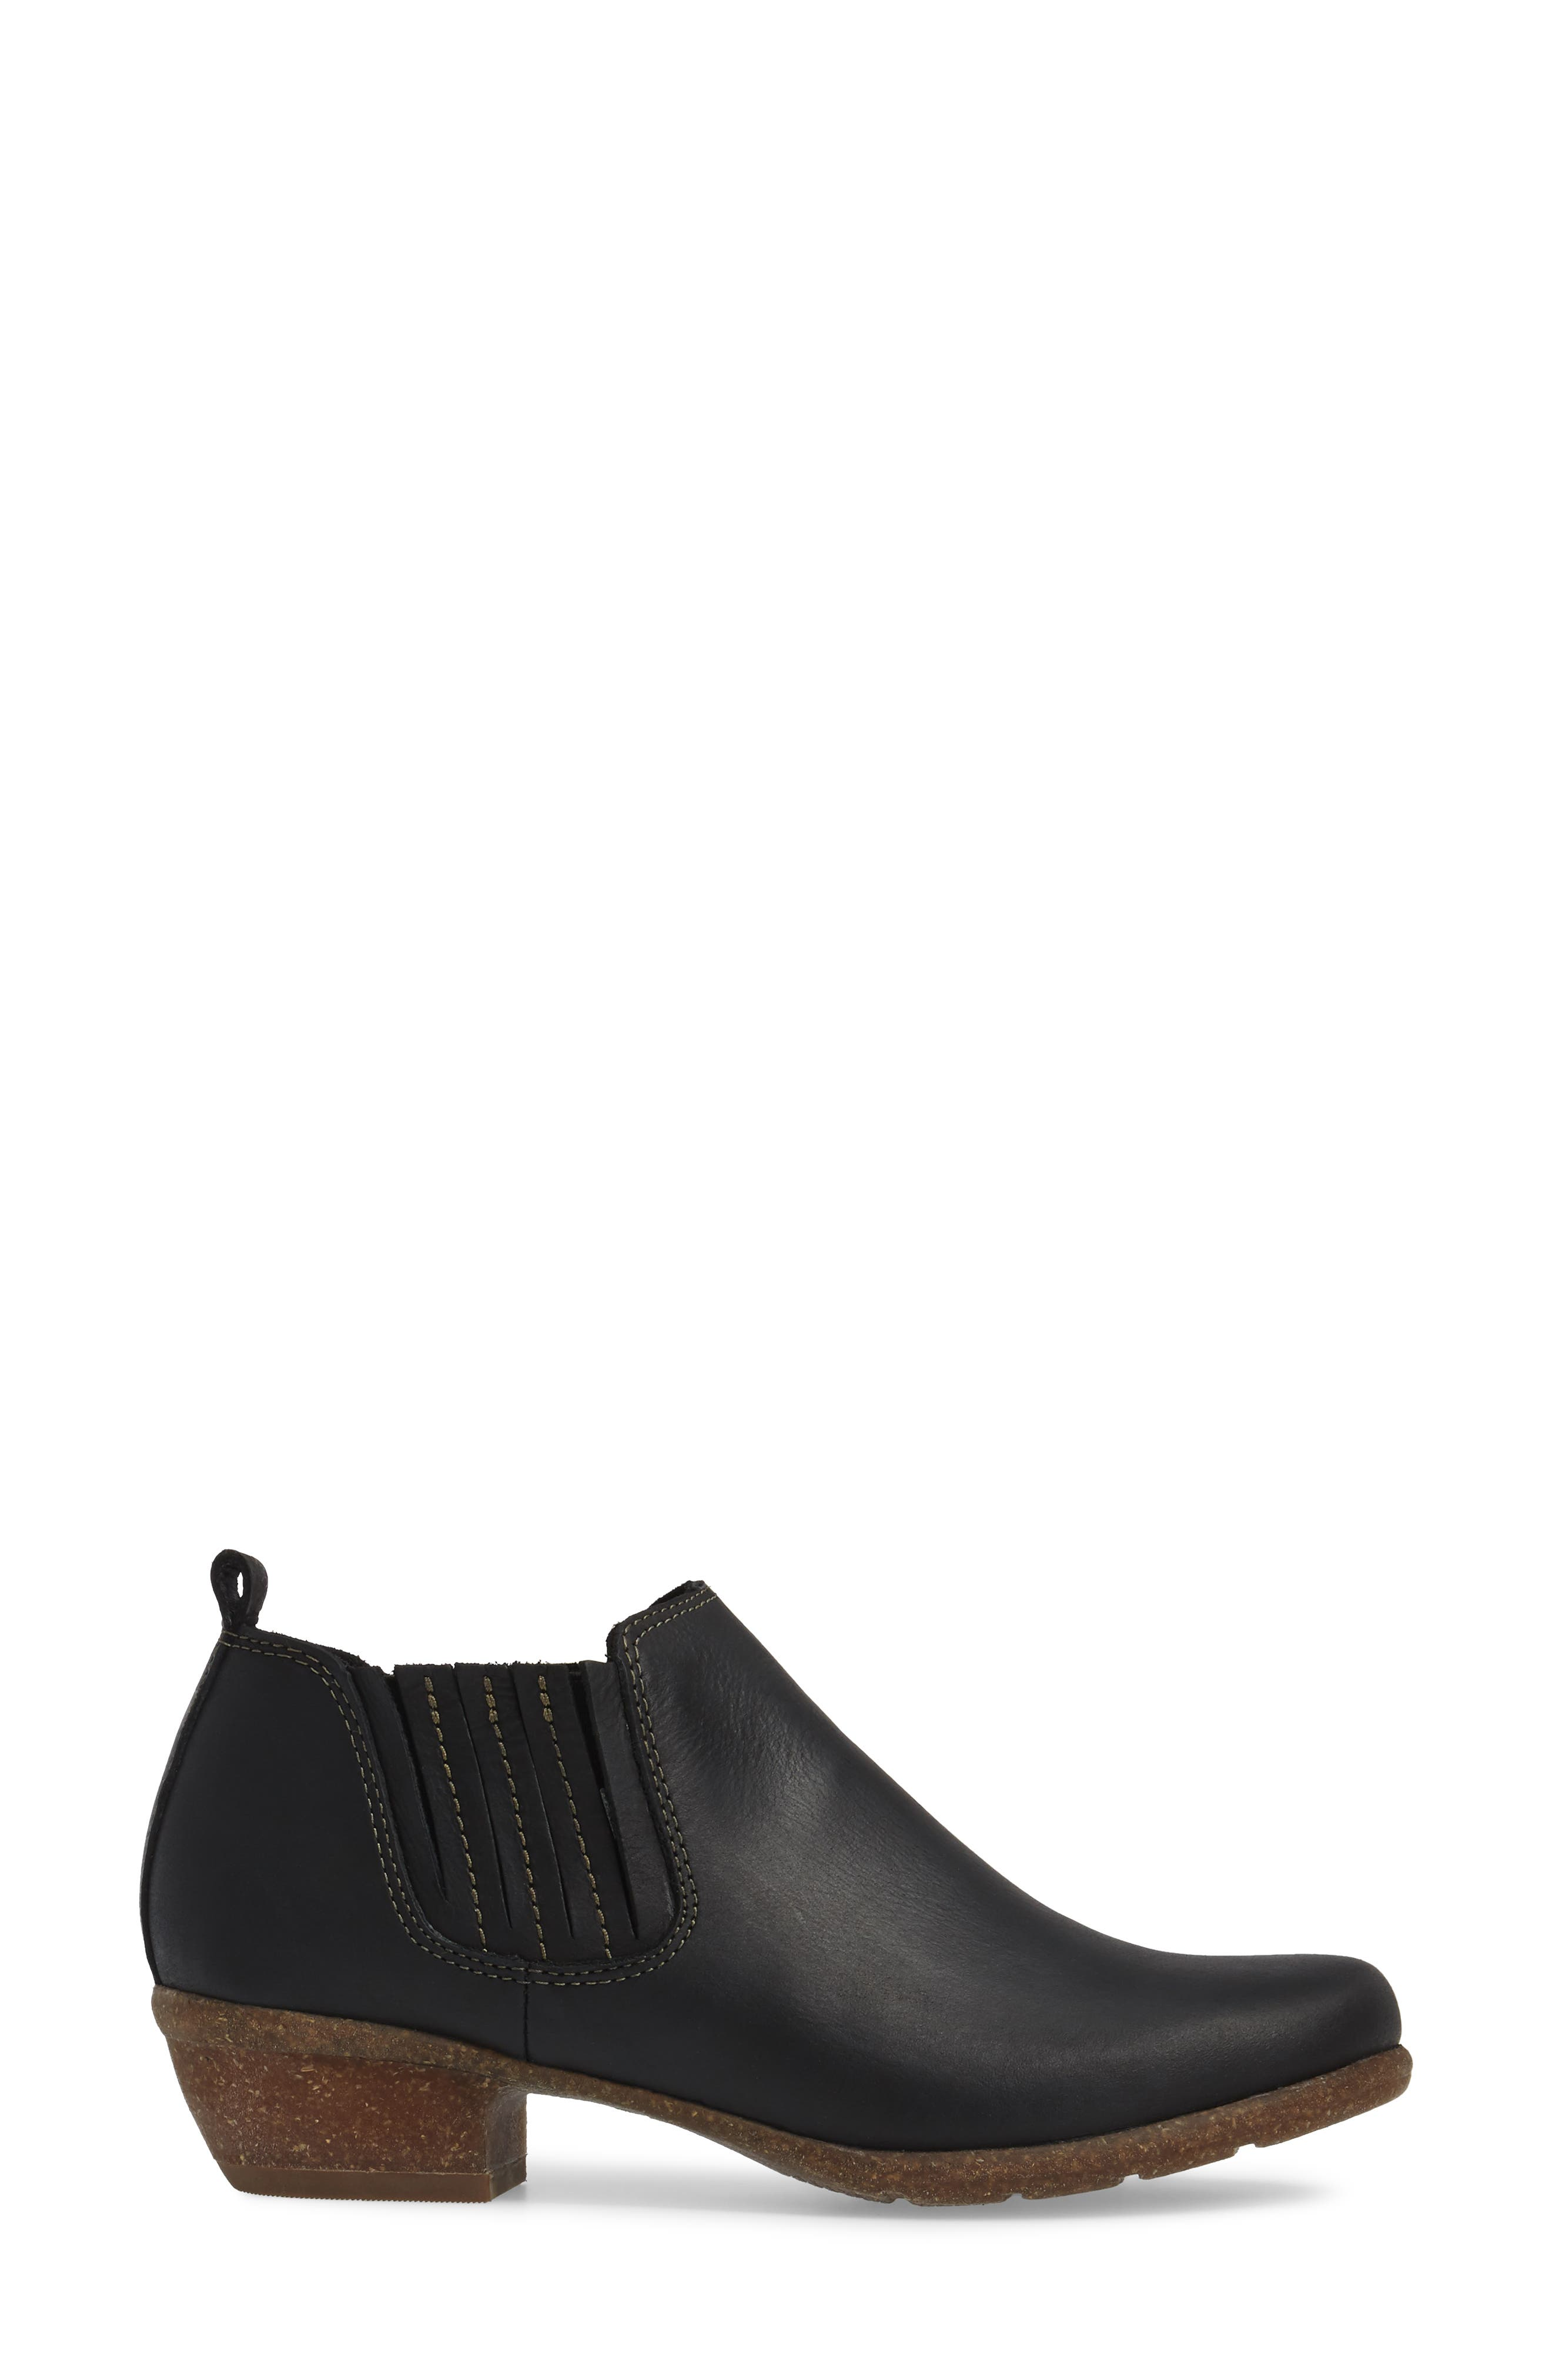 CLARKS<SUP>®</SUP>, Wilrose Jade Low Chelsea Bootie, Alternate thumbnail 3, color, 001